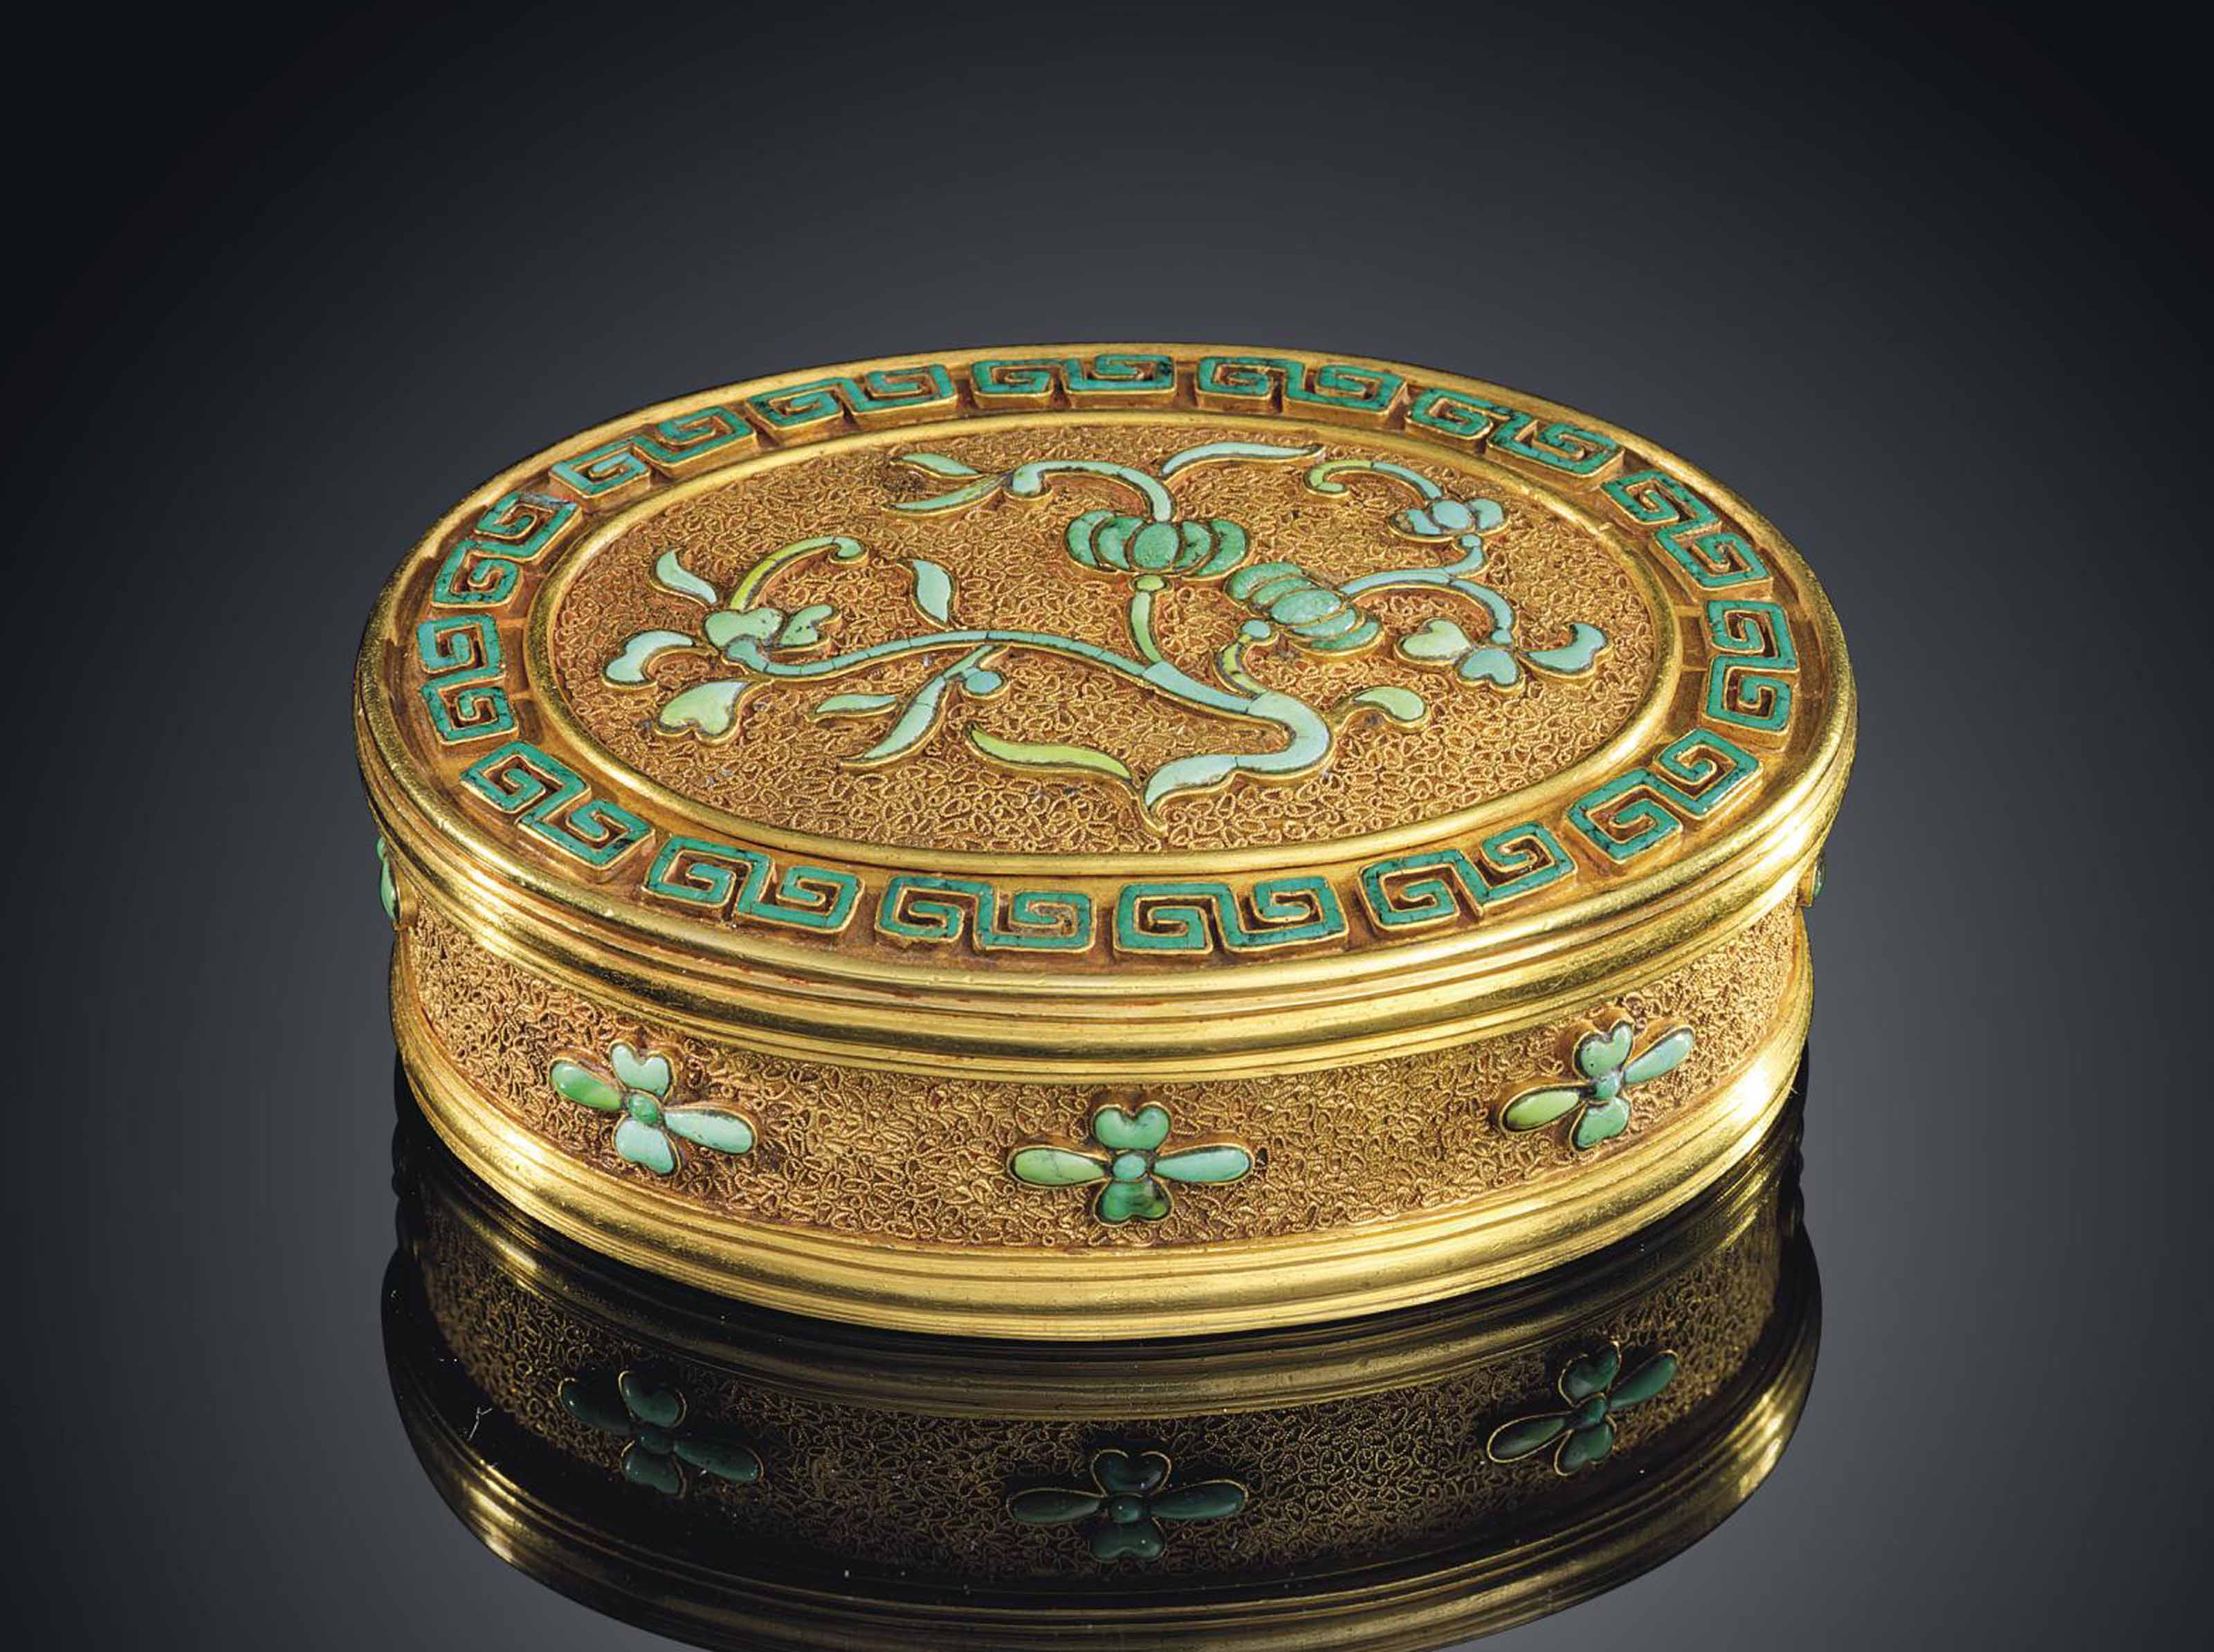 A SMALL TURQUOISE-INLAID GOLD